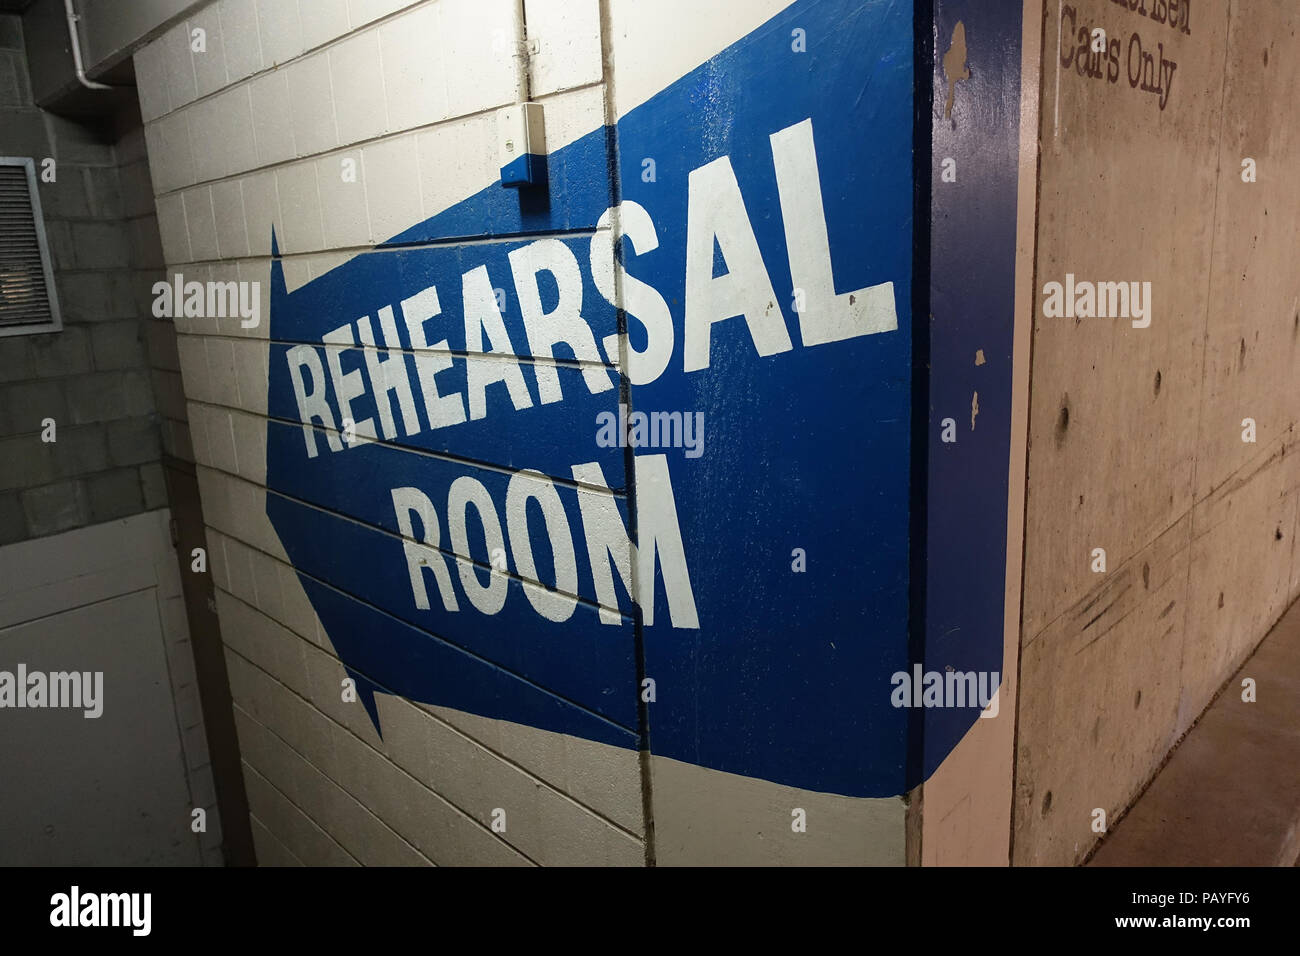 Directions to the Rehearsal Room - Stock Image